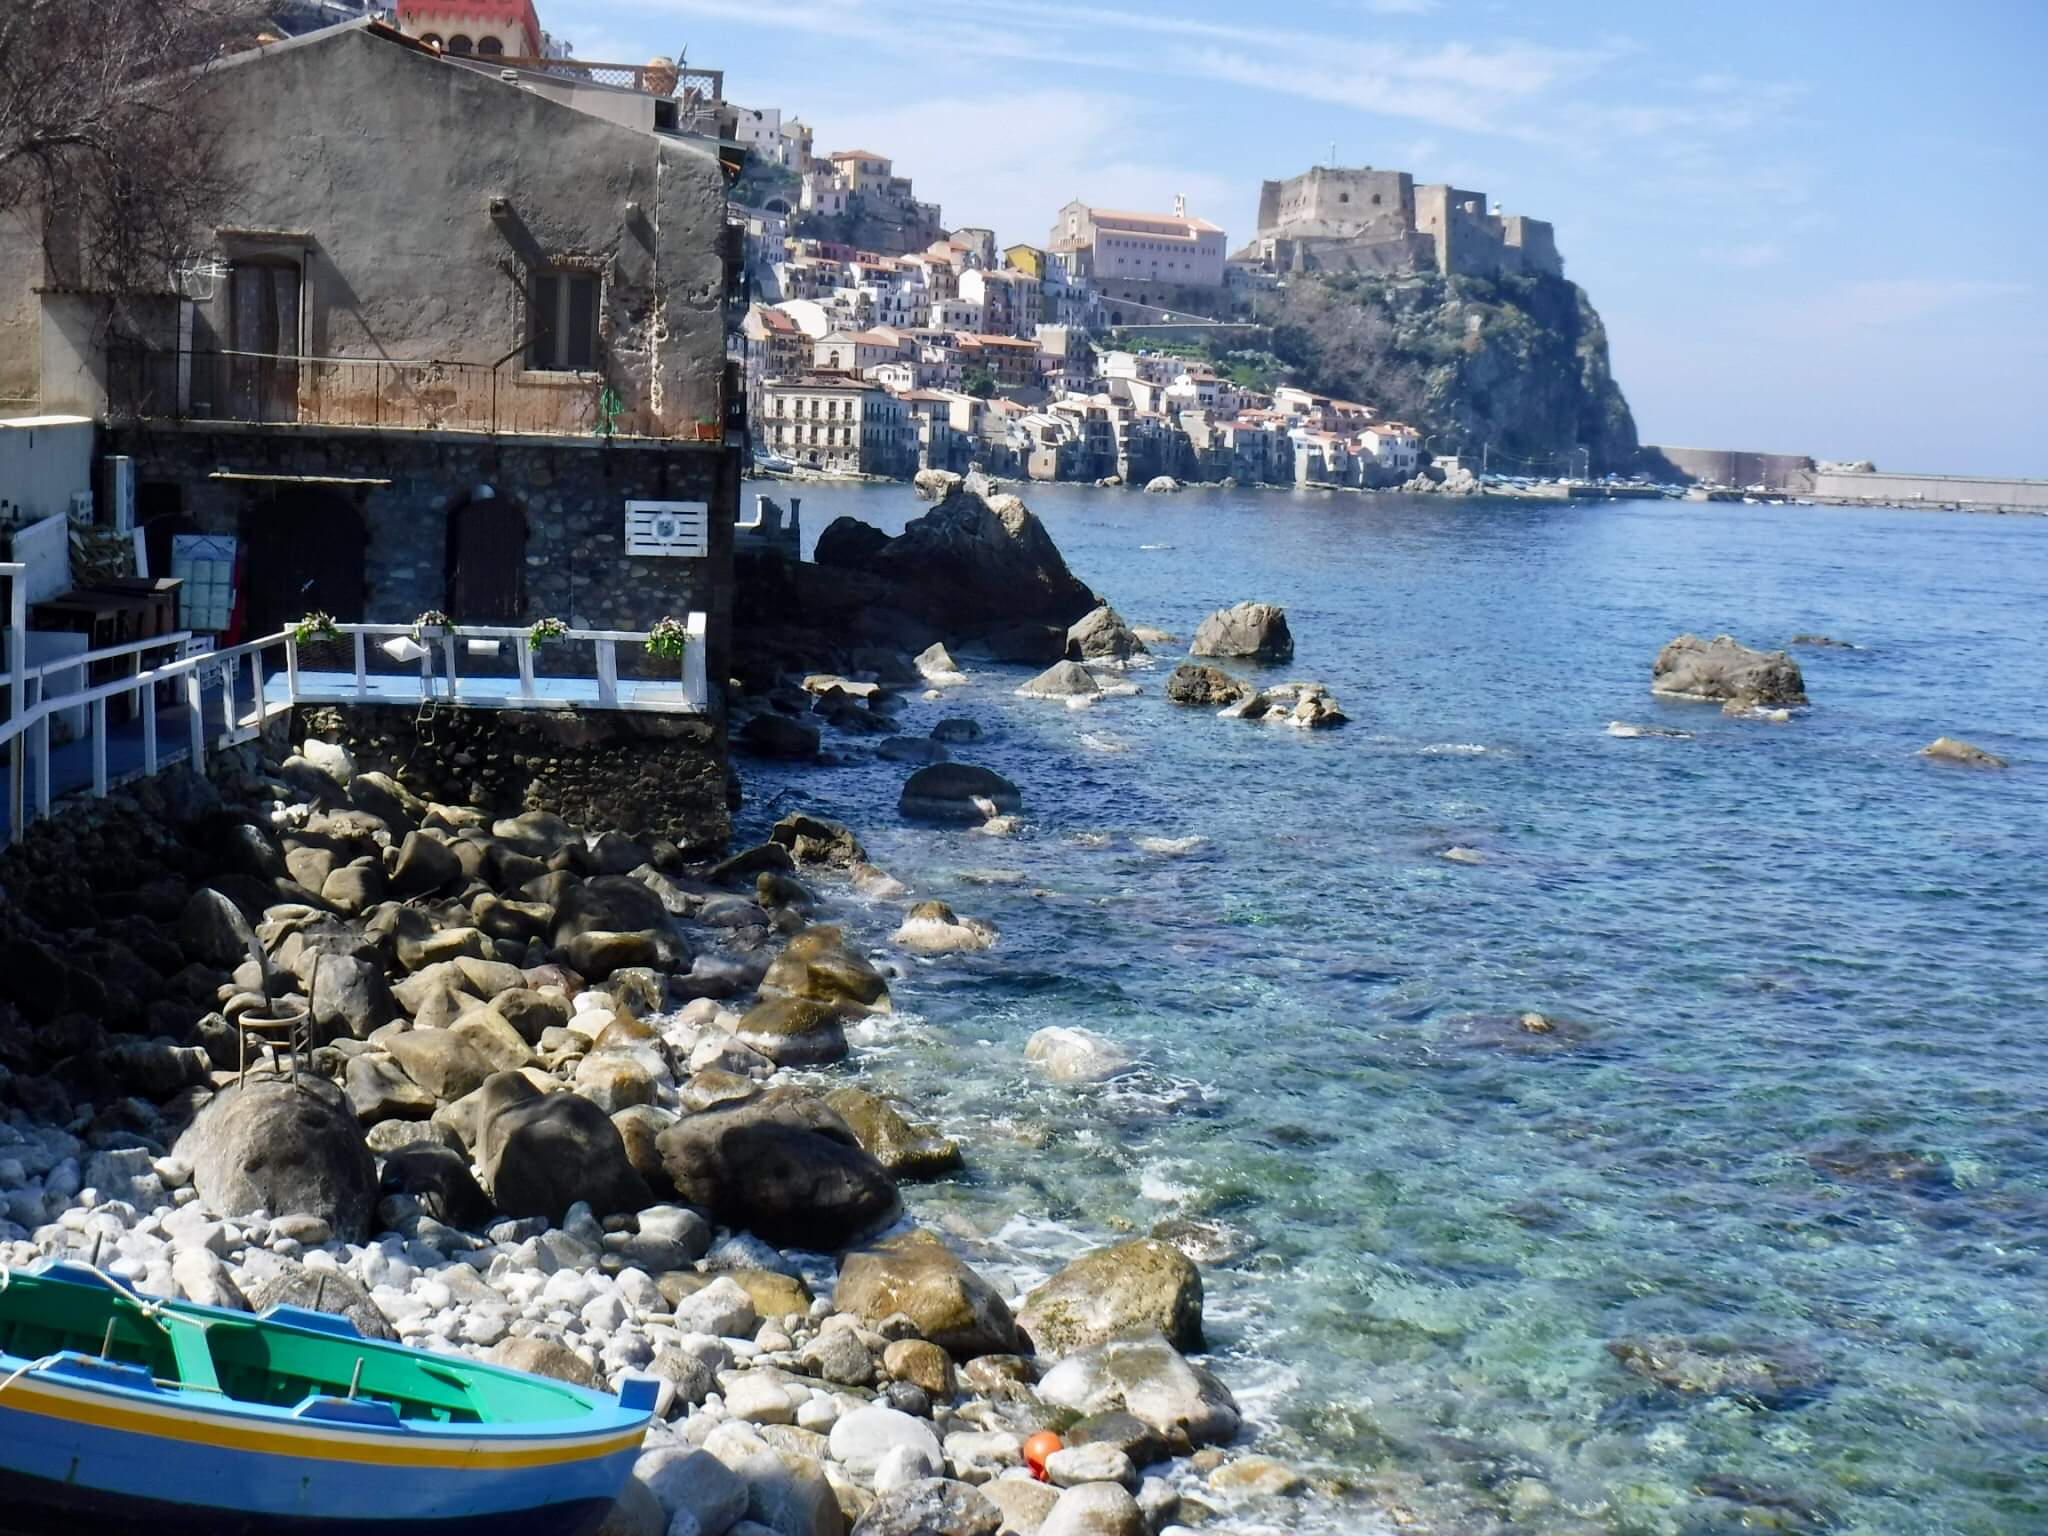 The marina in Scilla I would not have known existed on my own initiative